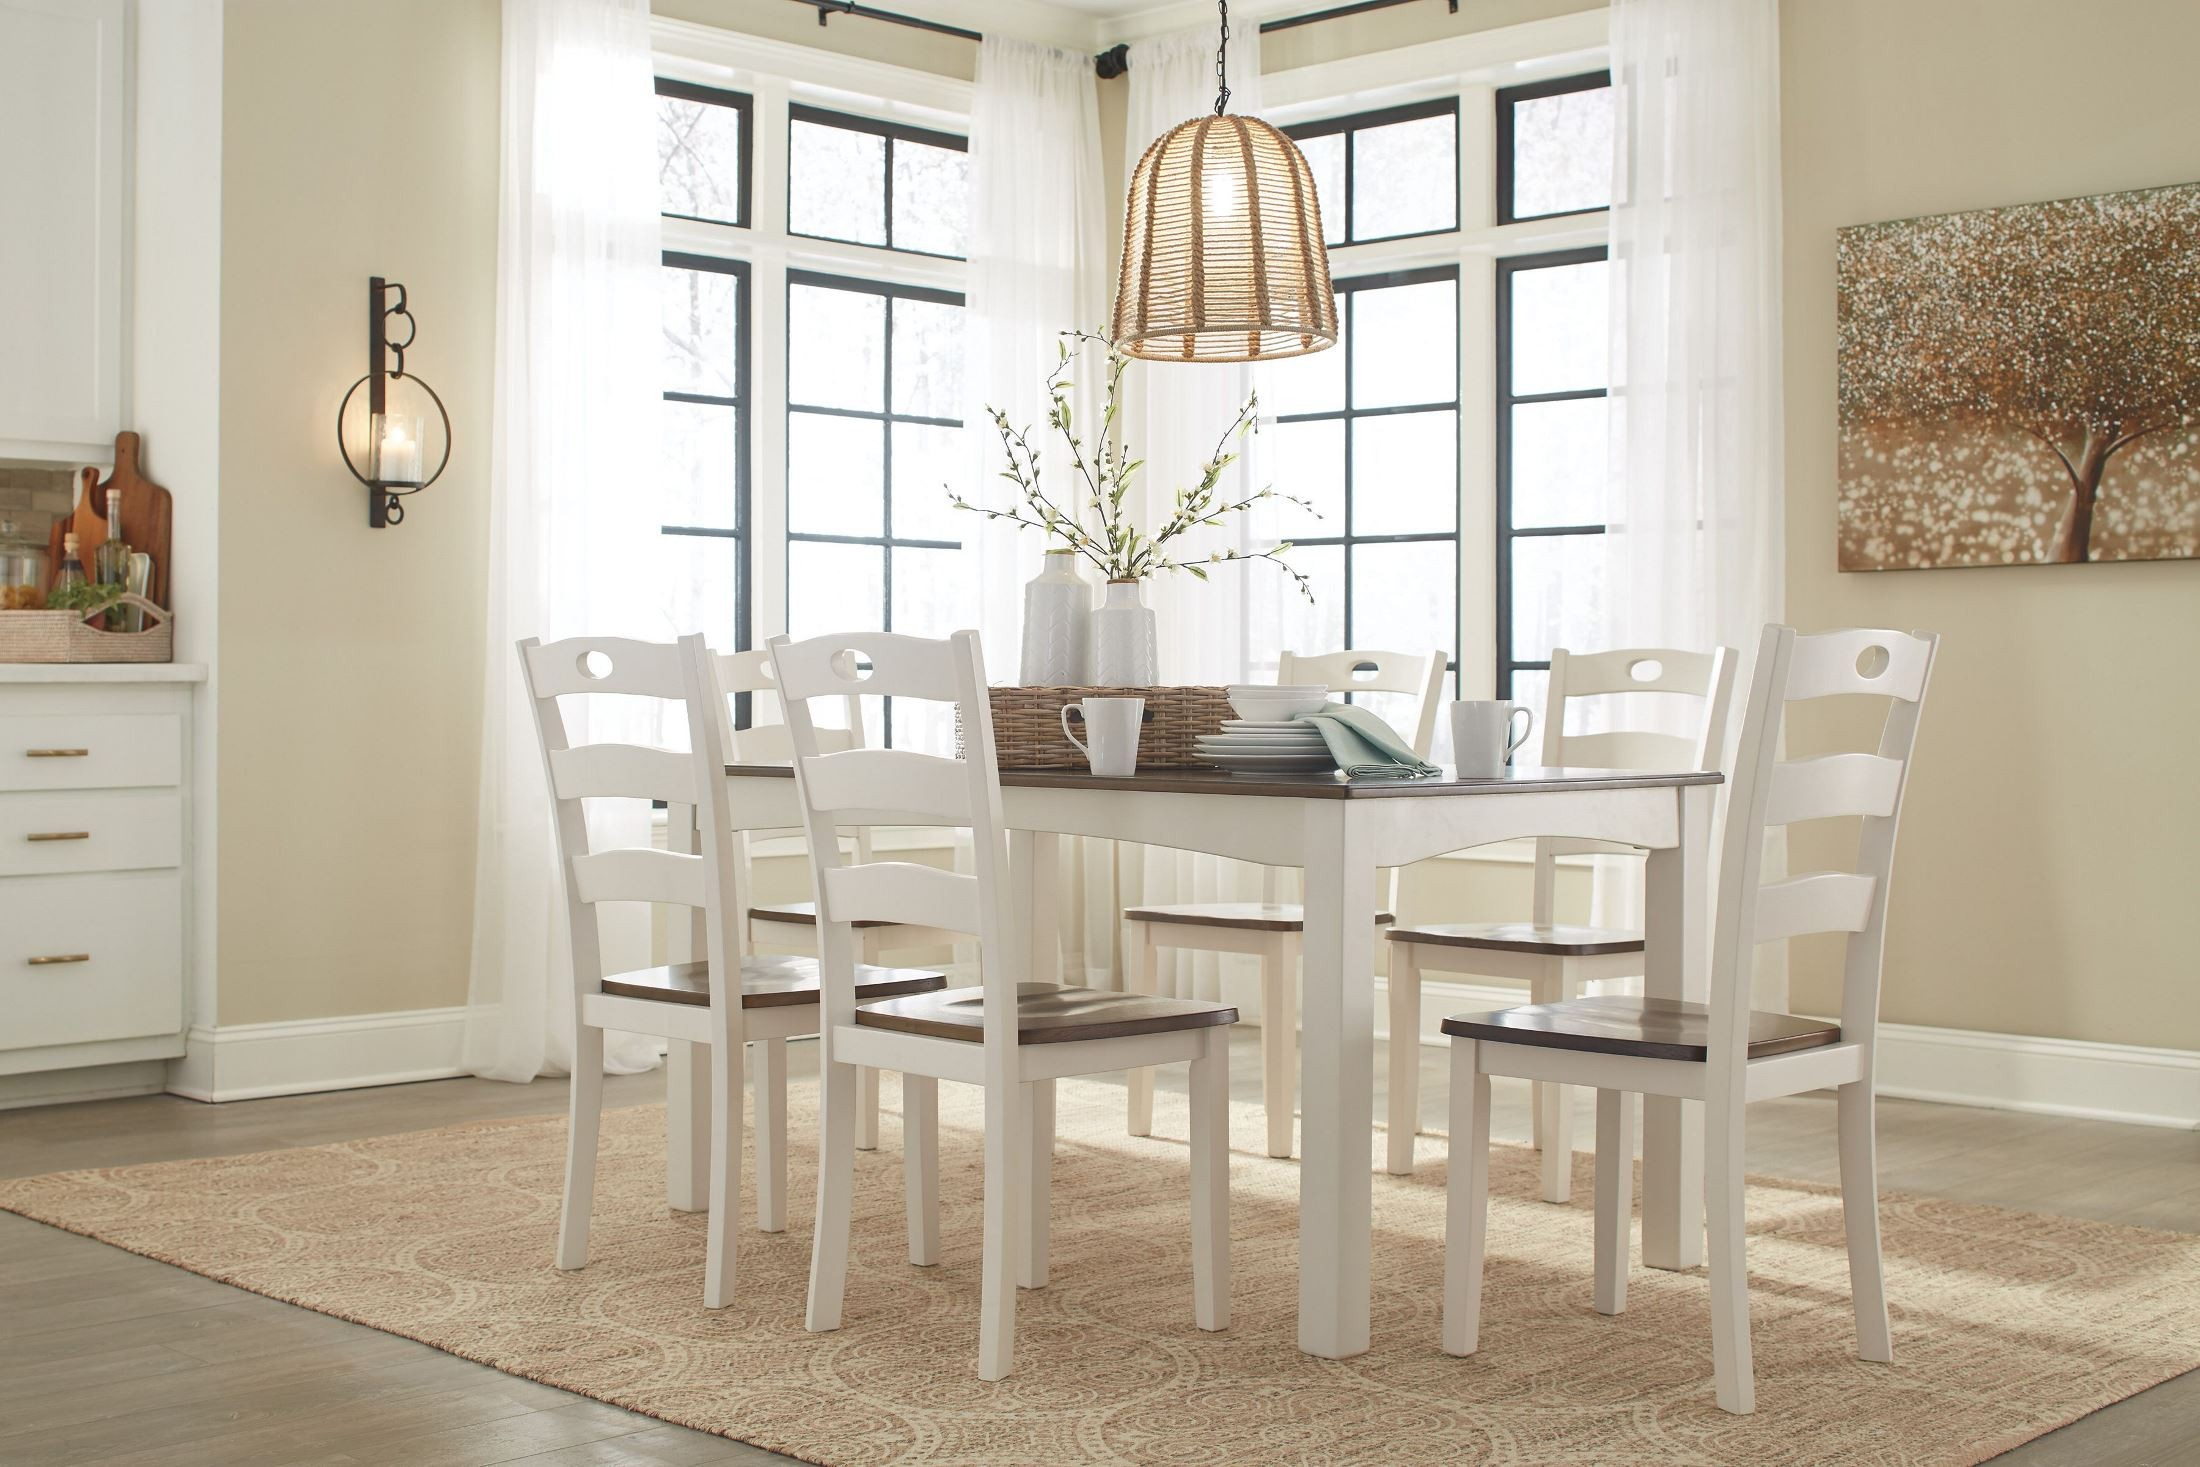 Woodanville White And Brown 7 Piece Dining Room Set, D335